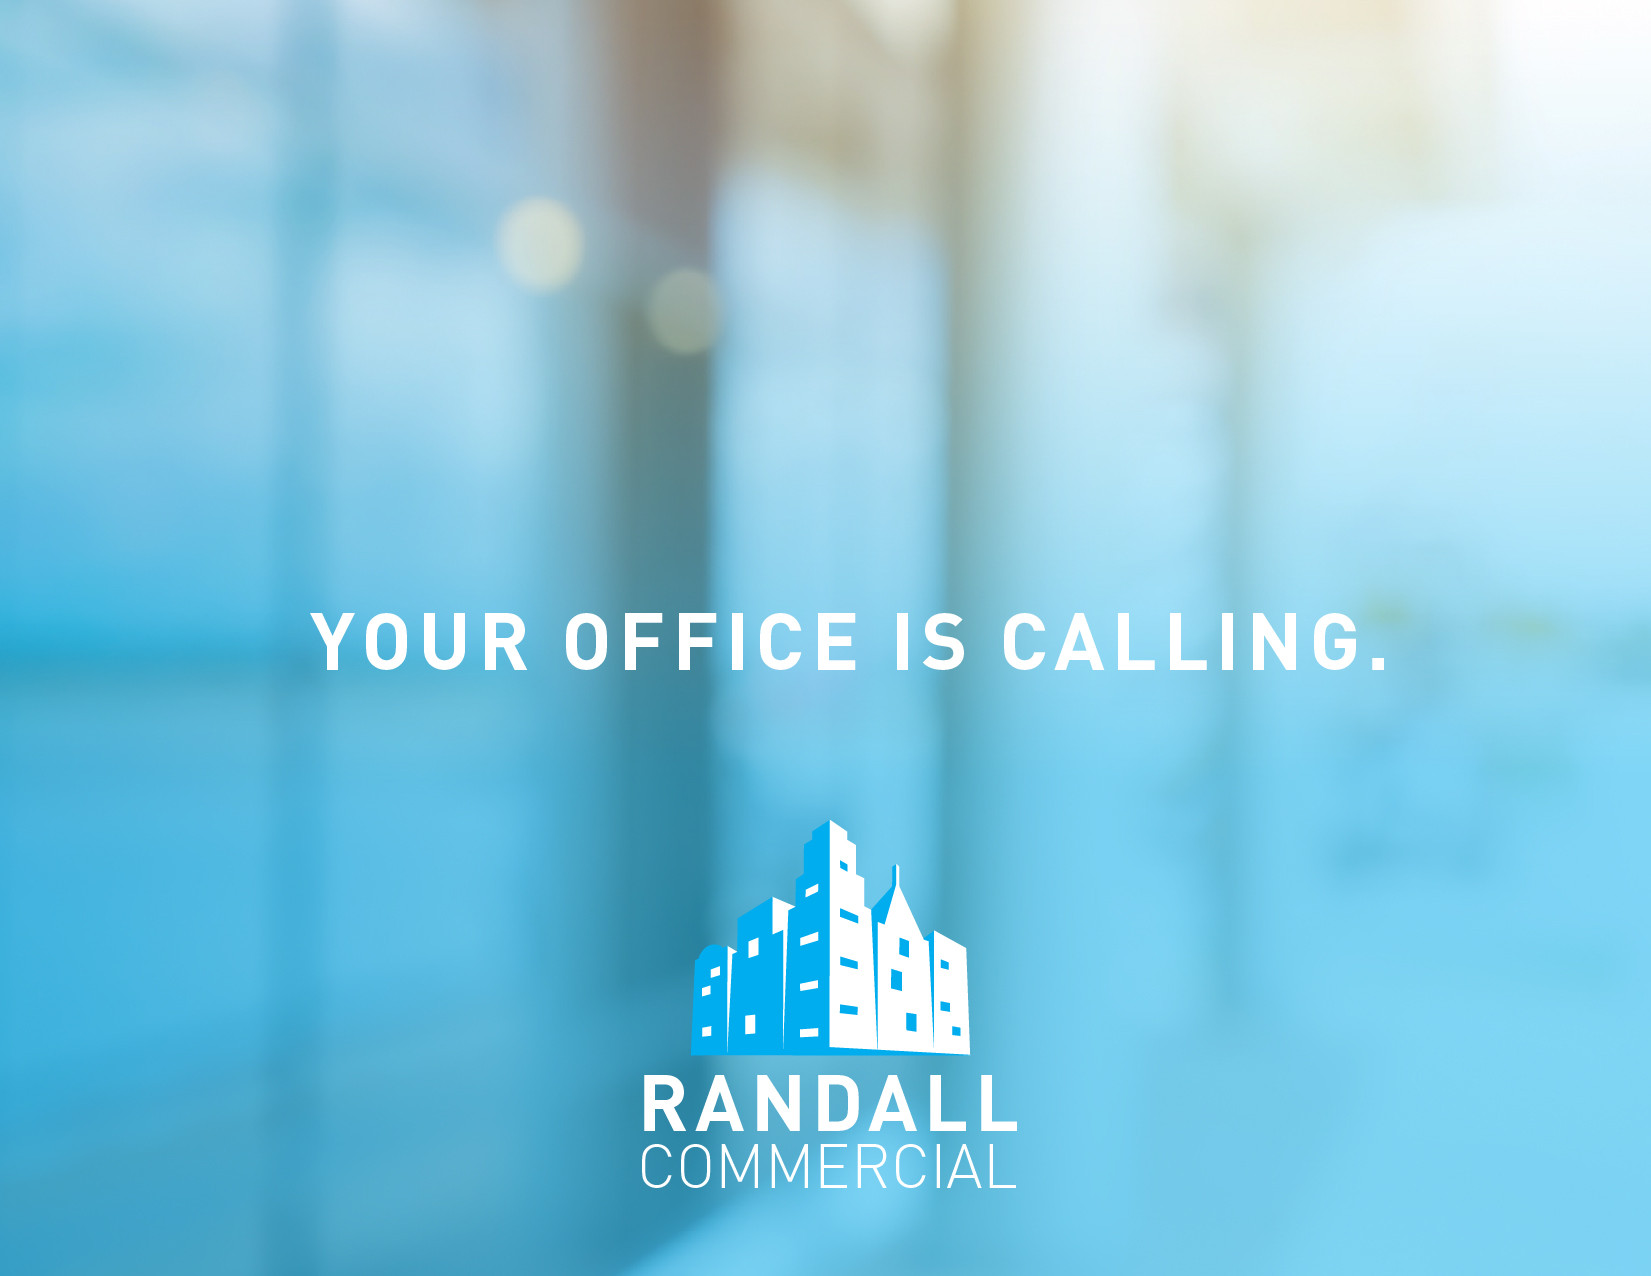 Randall commerical-ad-generic-01.jpg